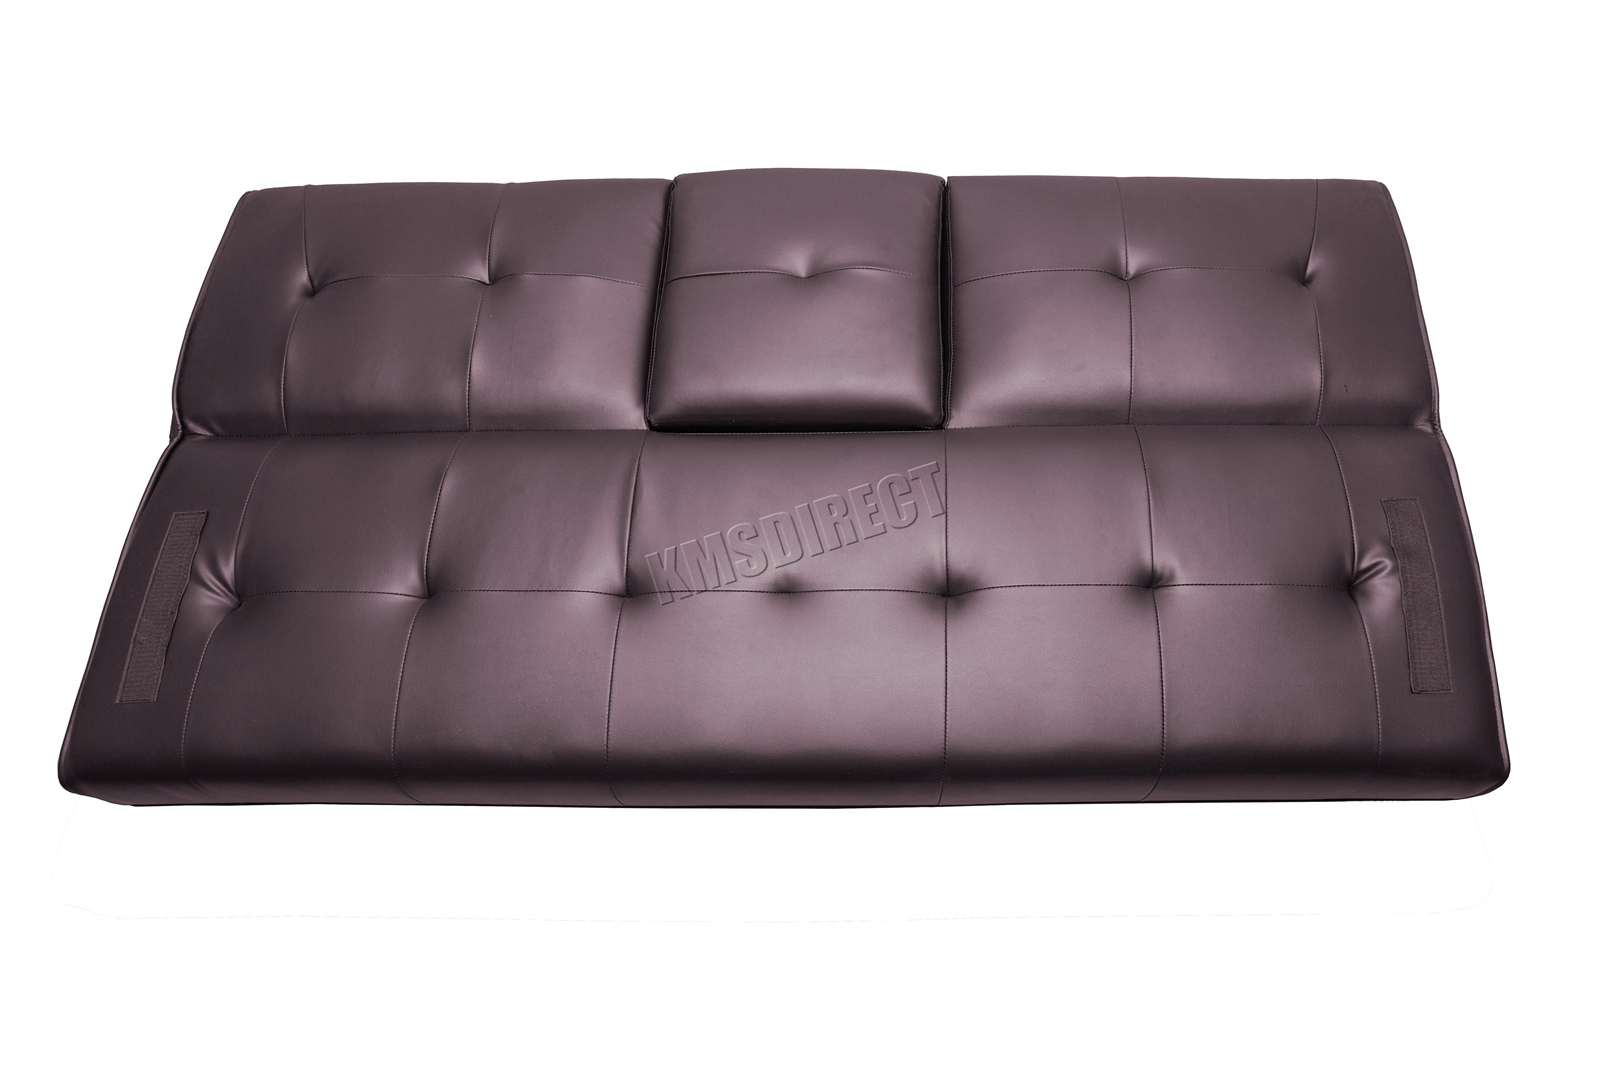 WestWood-Faux-Leather-Manhattan-Sofa-Bed-recliner-3-Seater-Modern-Luxury-Design thumbnail 27